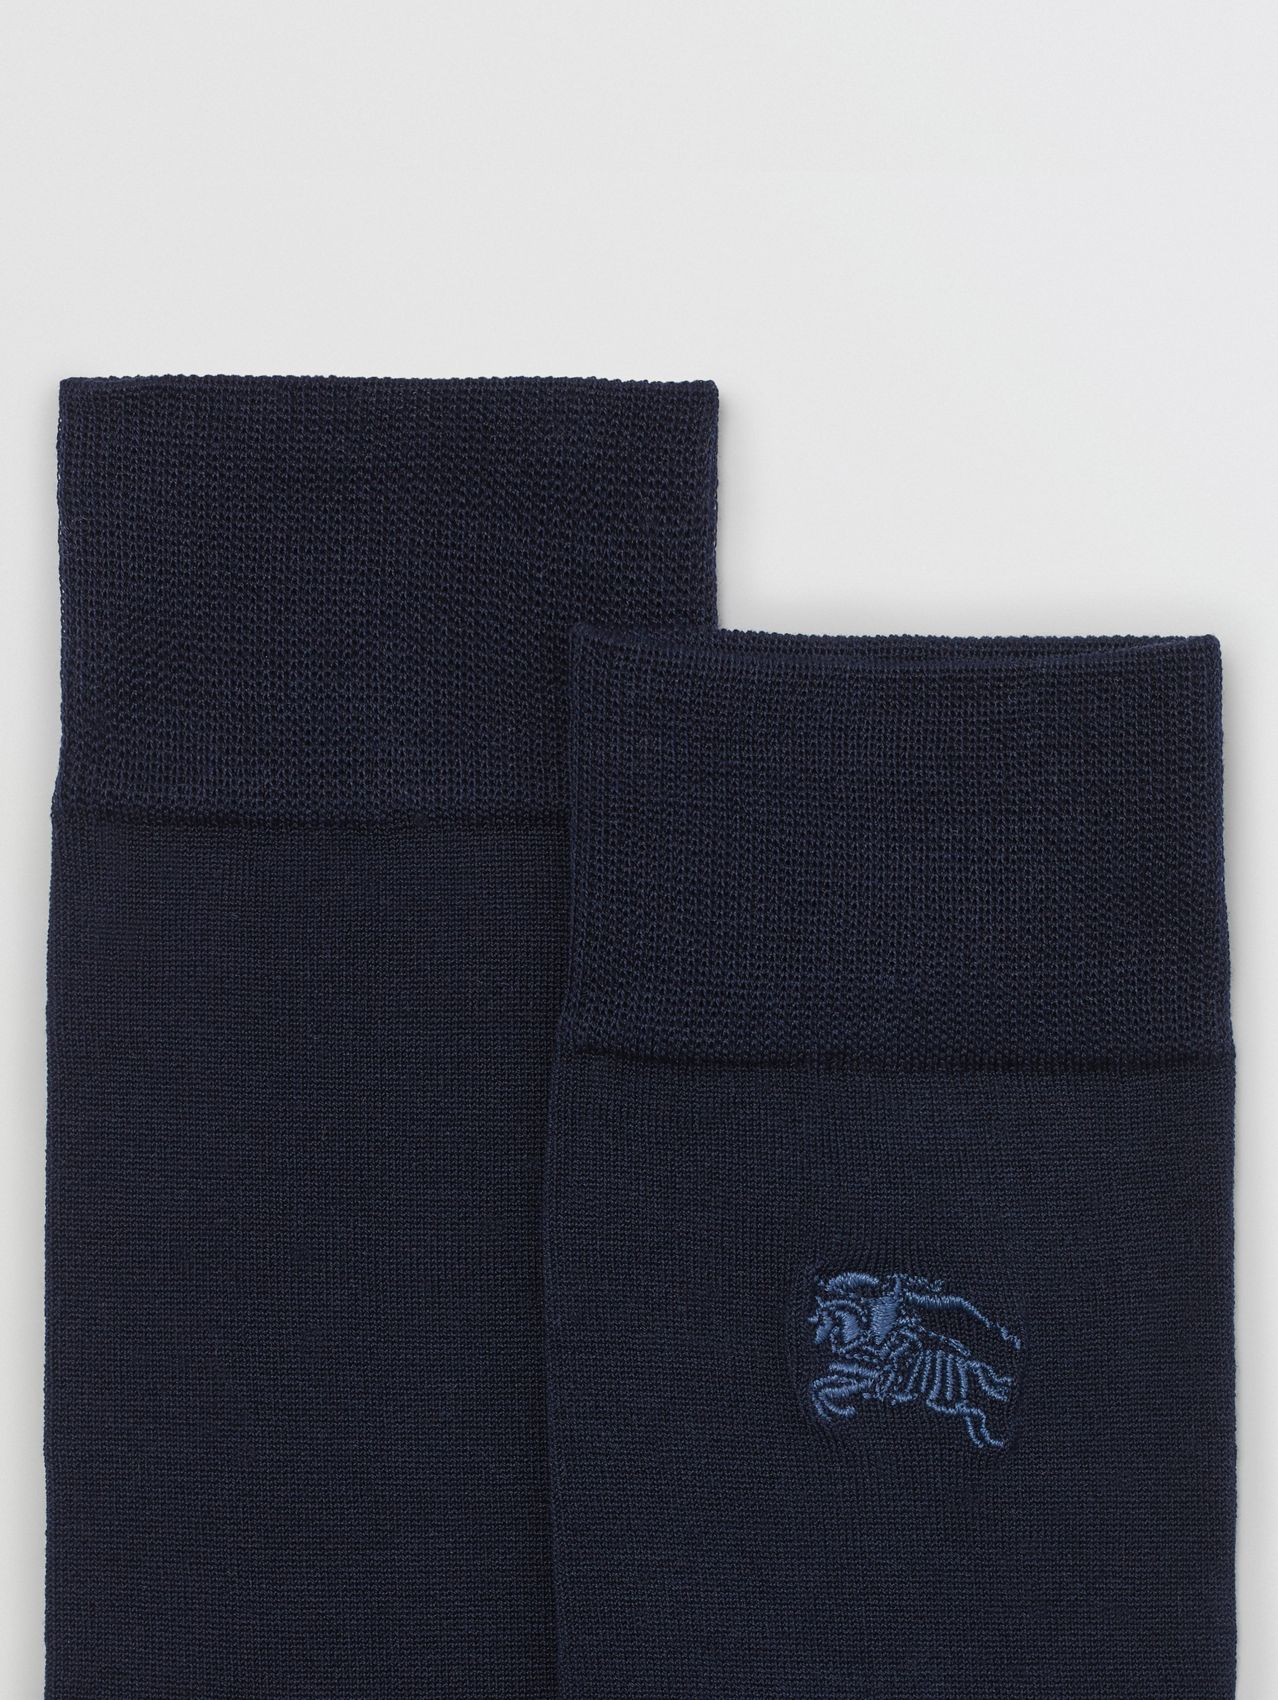 Embroidered EKD Cotton Blend Socks in Dark Navy